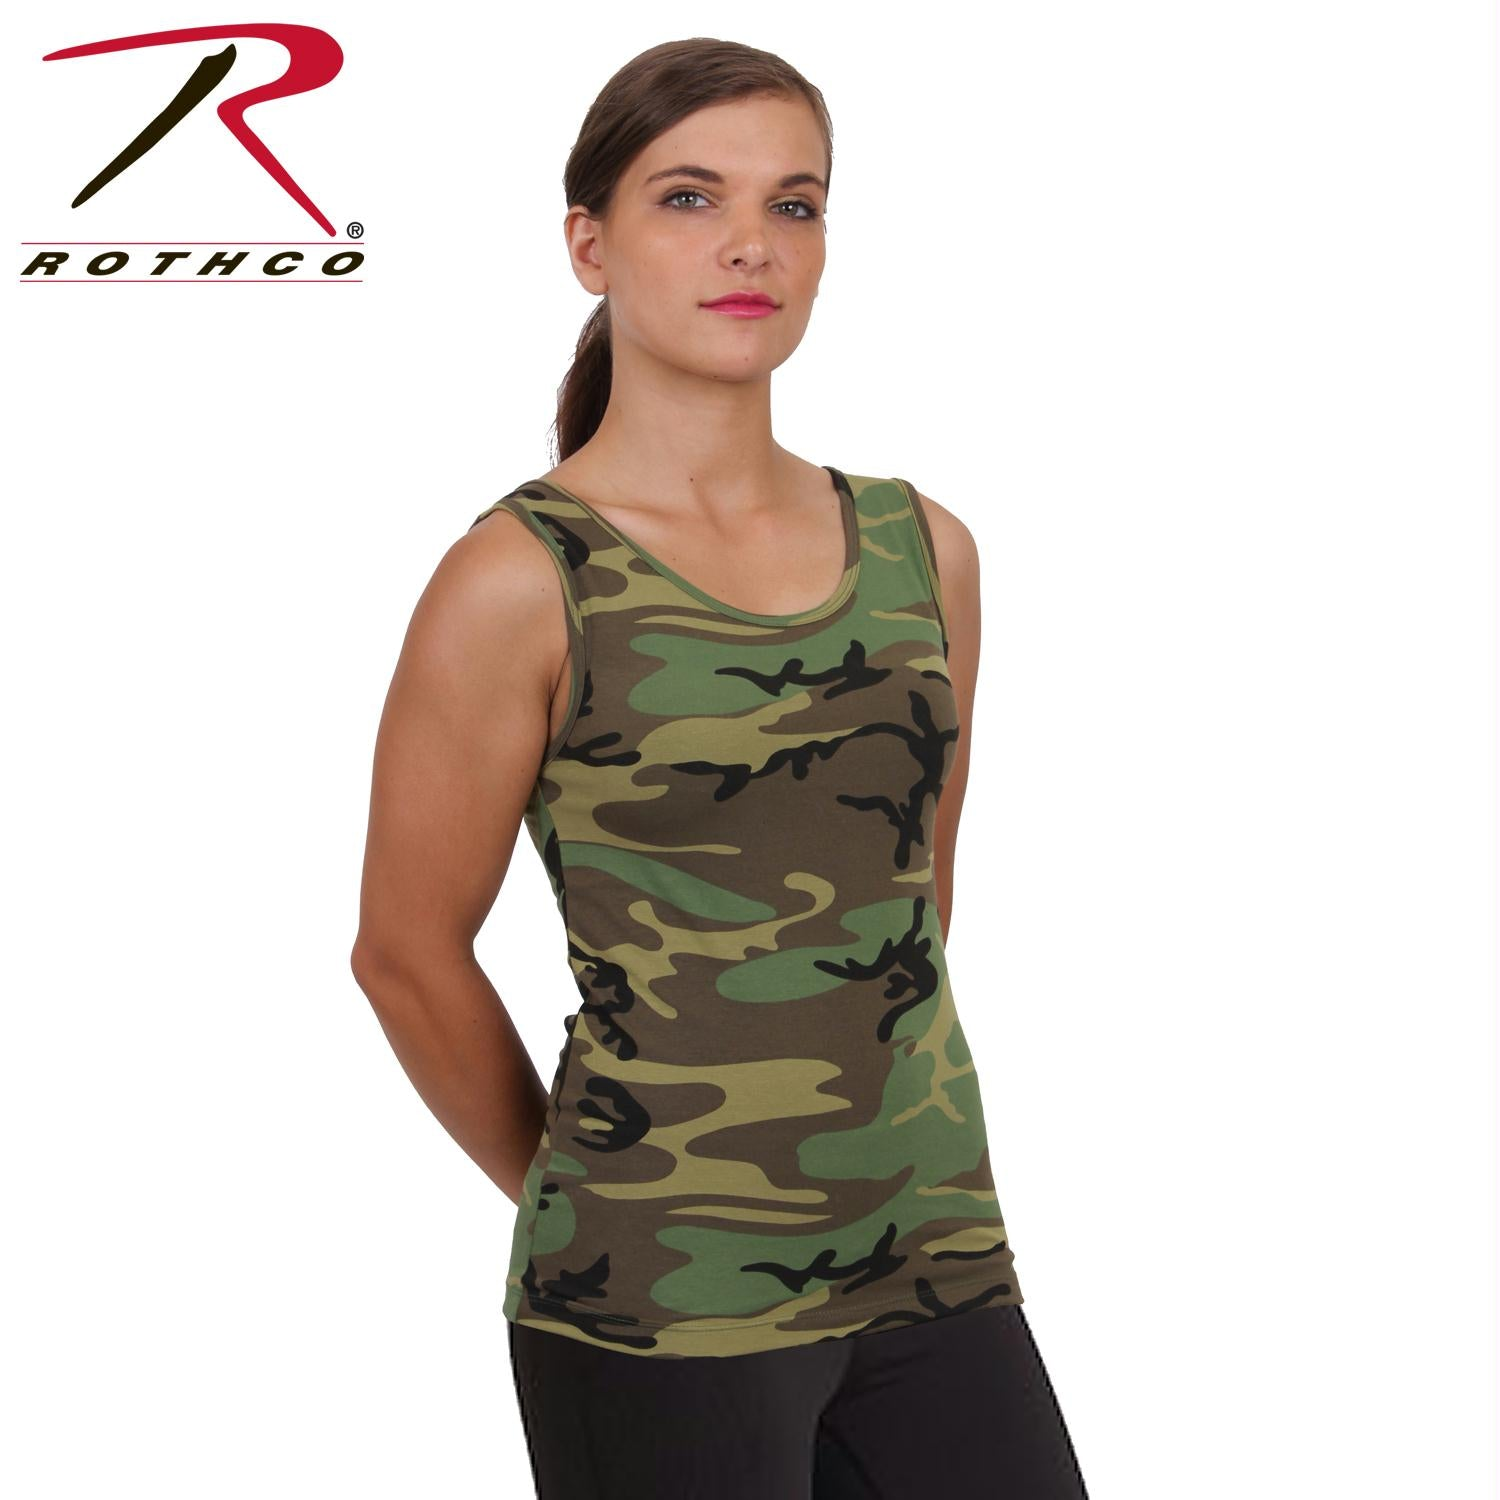 Rothco Womens Camo Stretch Tank Top